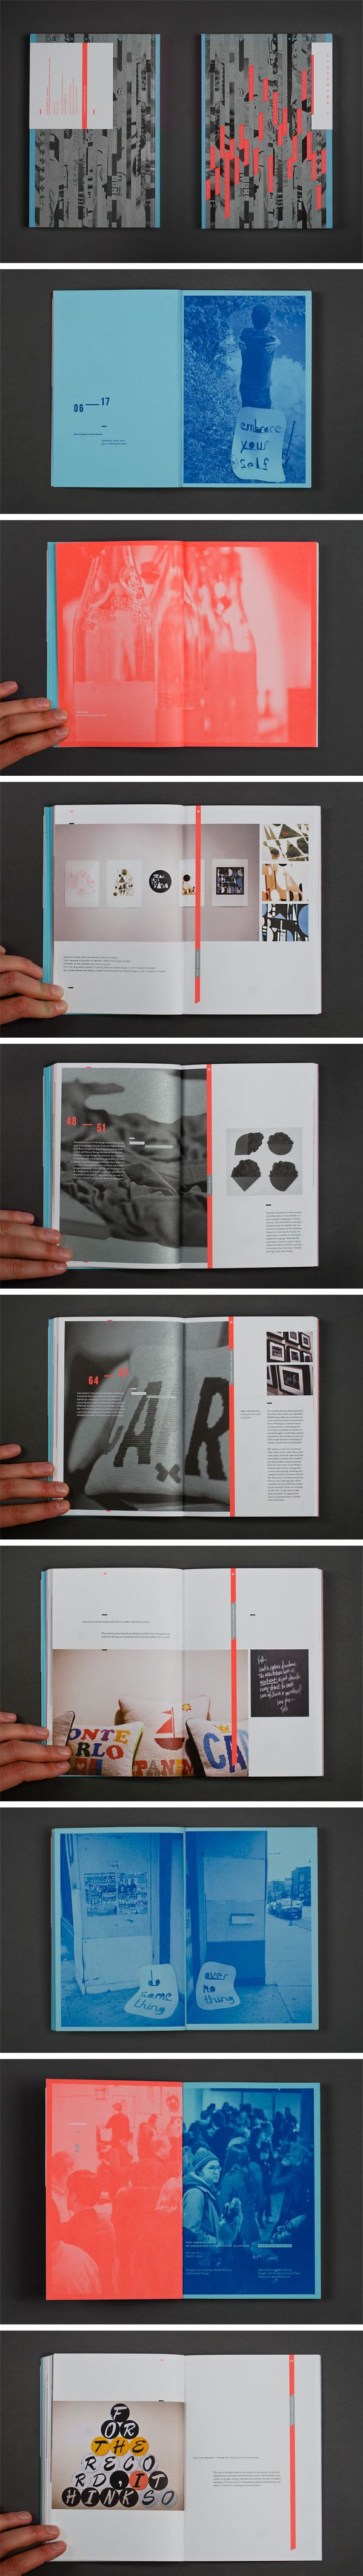 Typeforce 2 Exhibition Catalogue